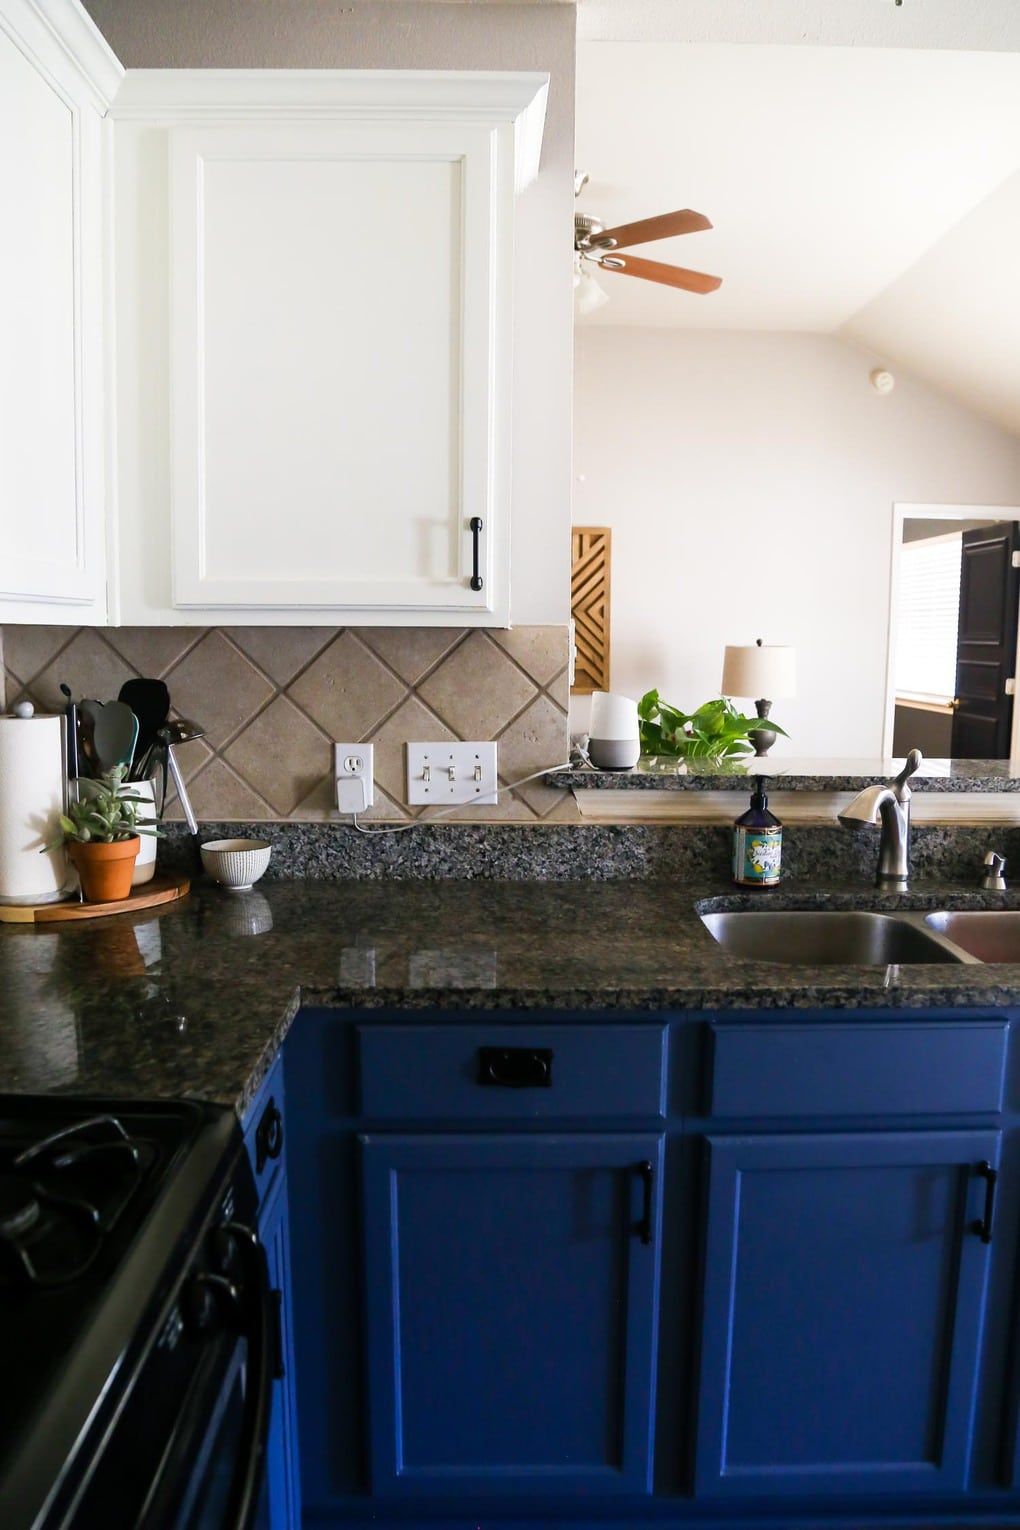 Painting kitchen cabinets blue and white